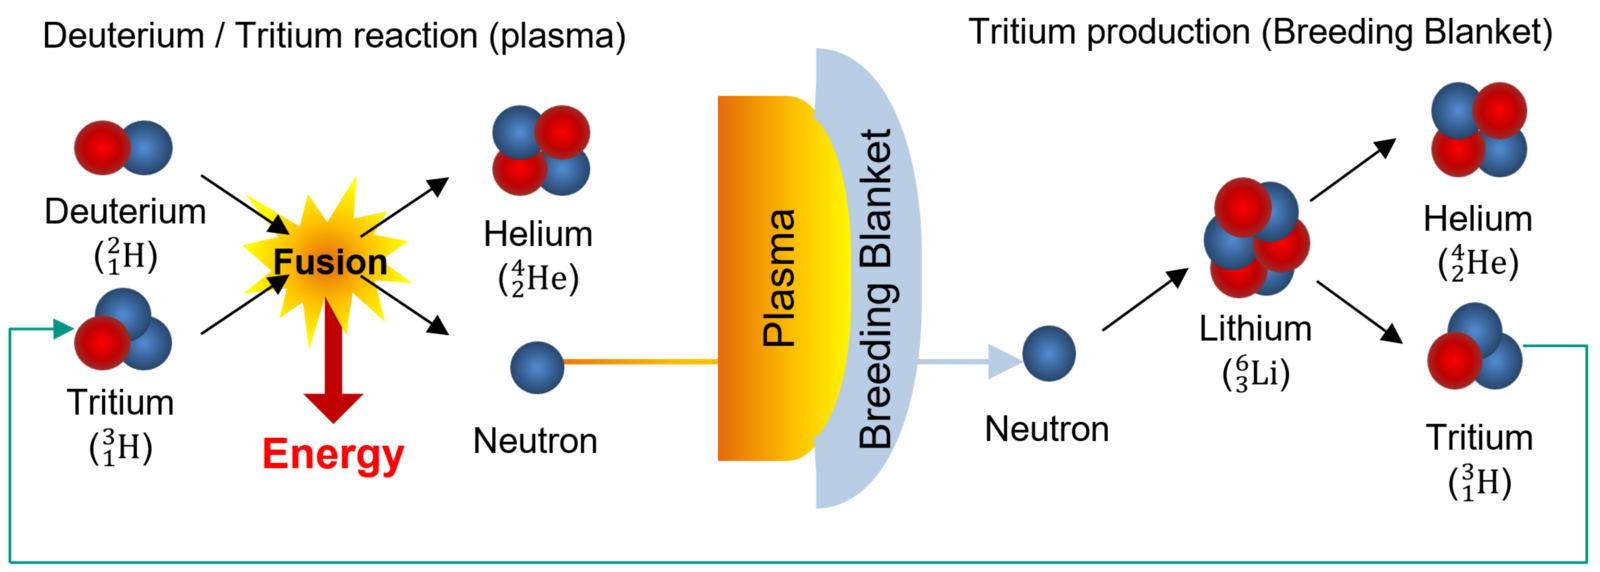 Tritium: a challenging fuel for fusion- EUROfusion